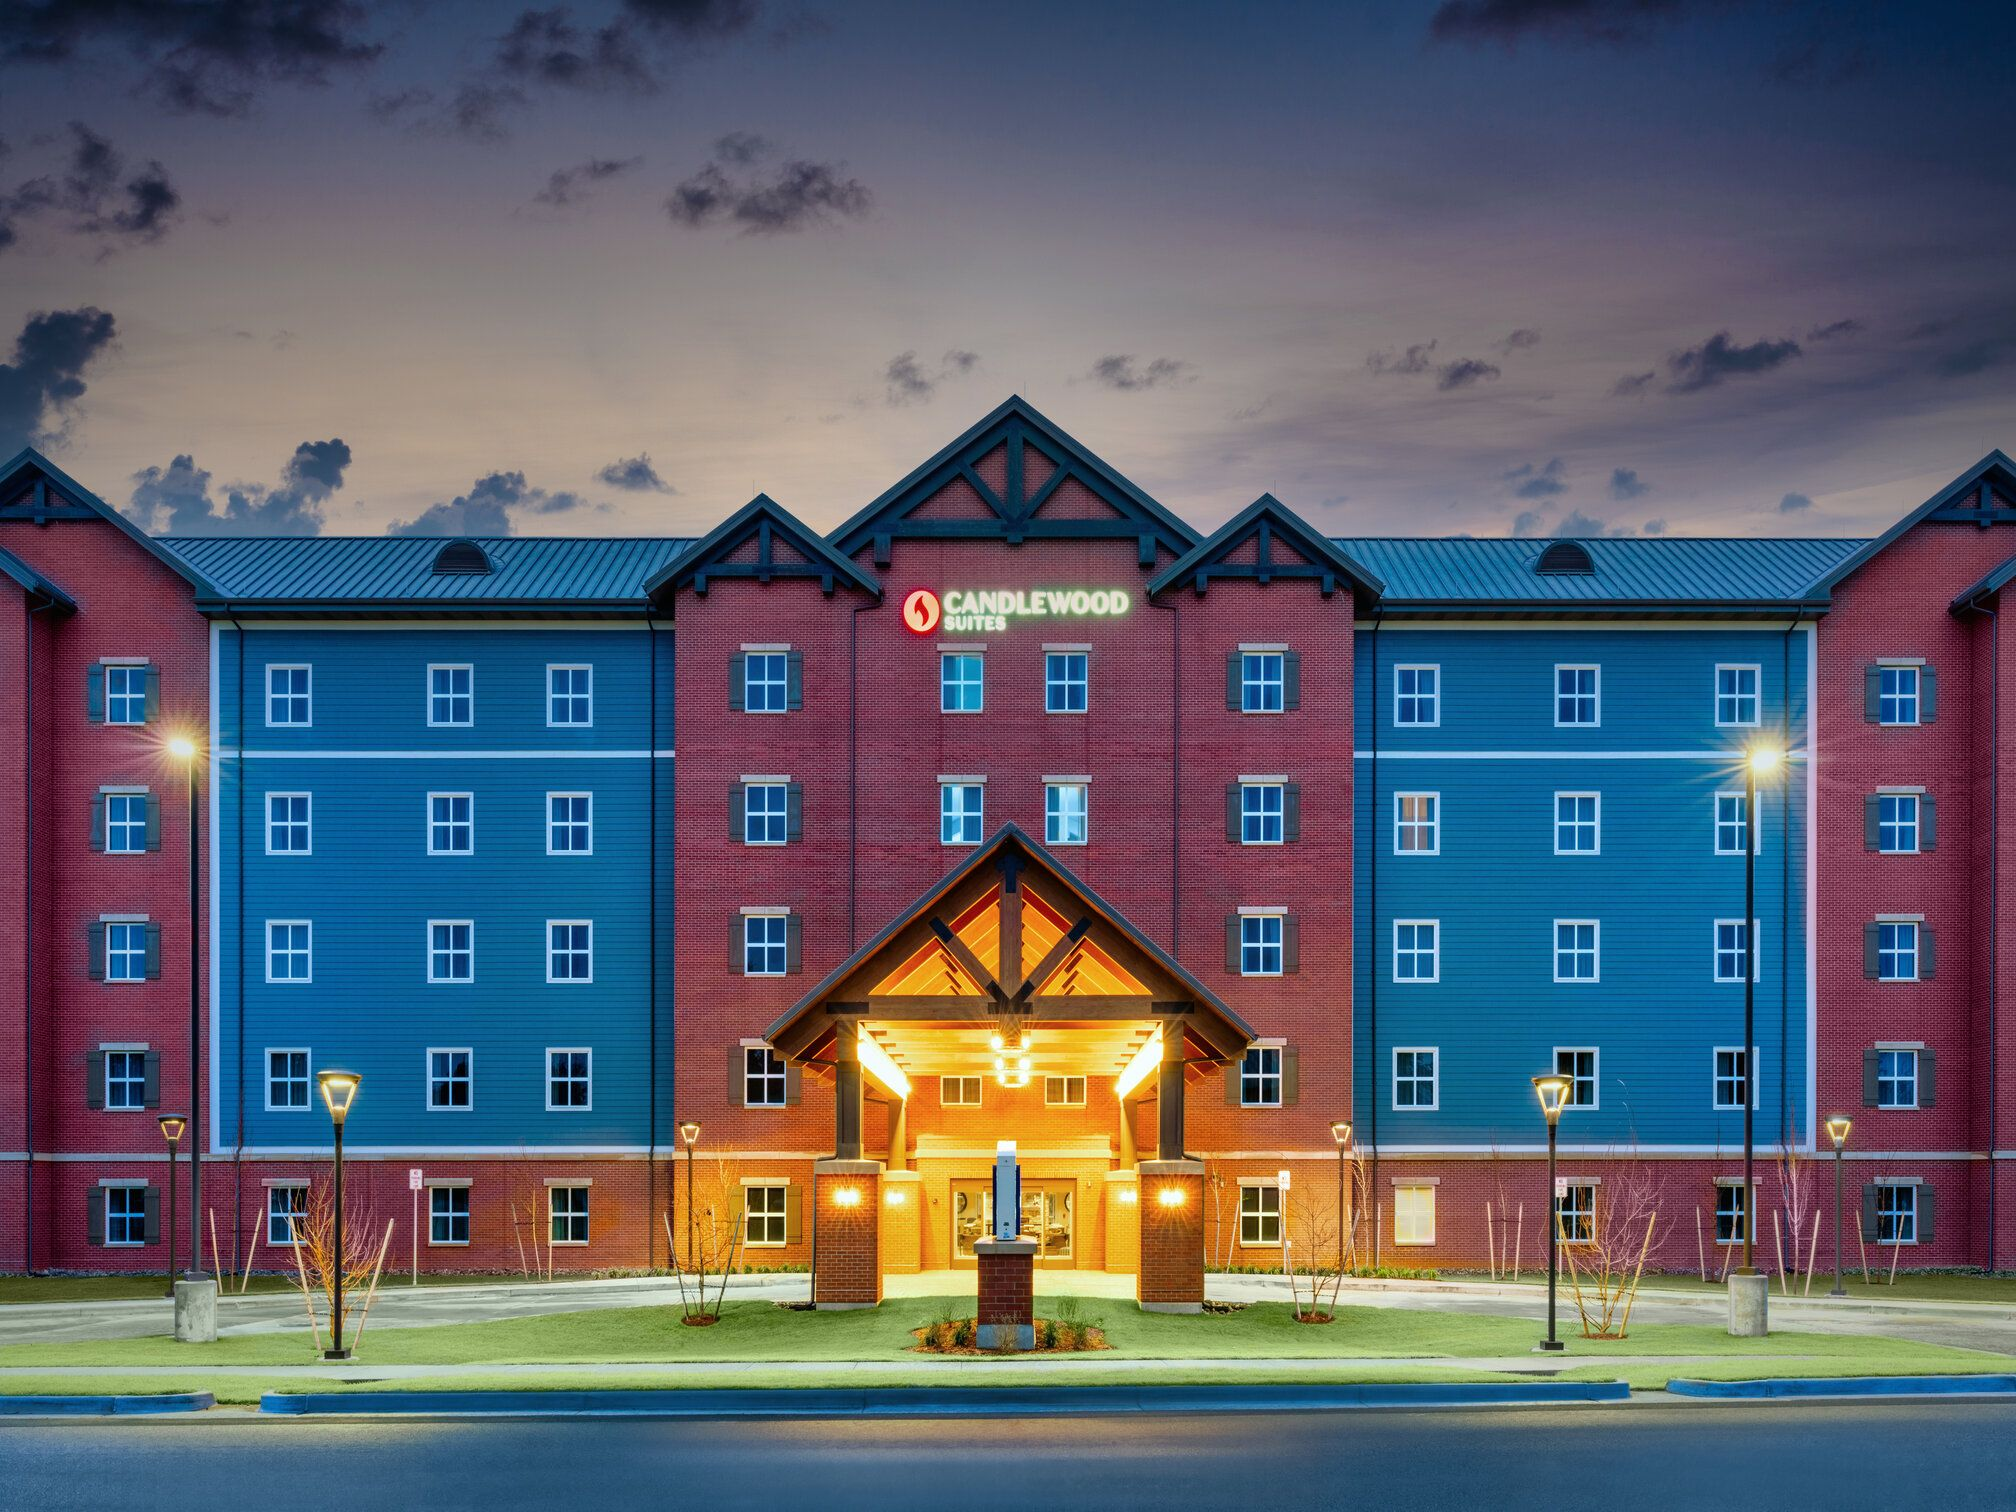 Candlewood Suites on Joint Base Lewis-McChord, WA